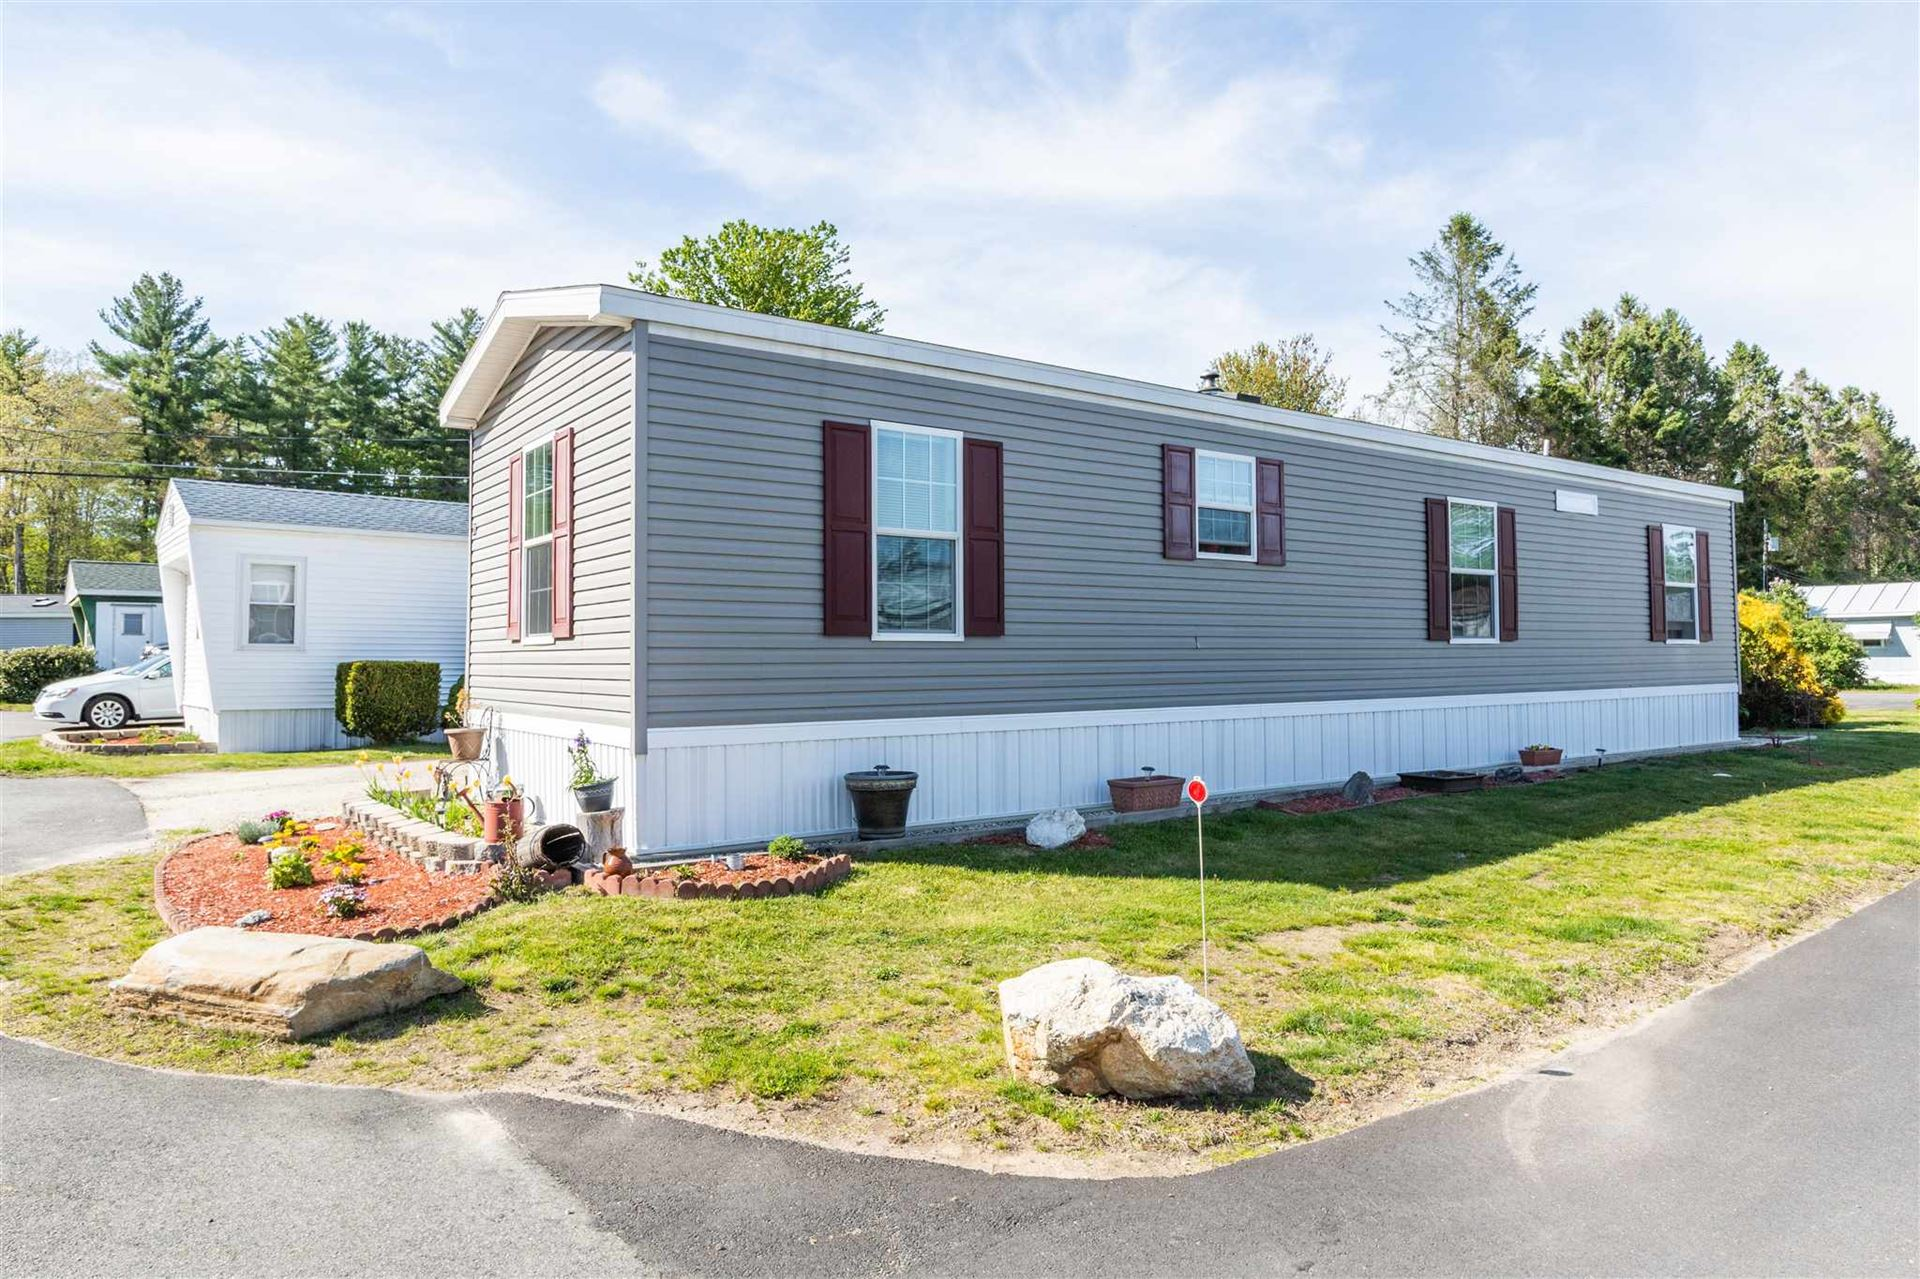 27 Barksdale Avenue, Londonderry, NH 03053 - #: 4807845